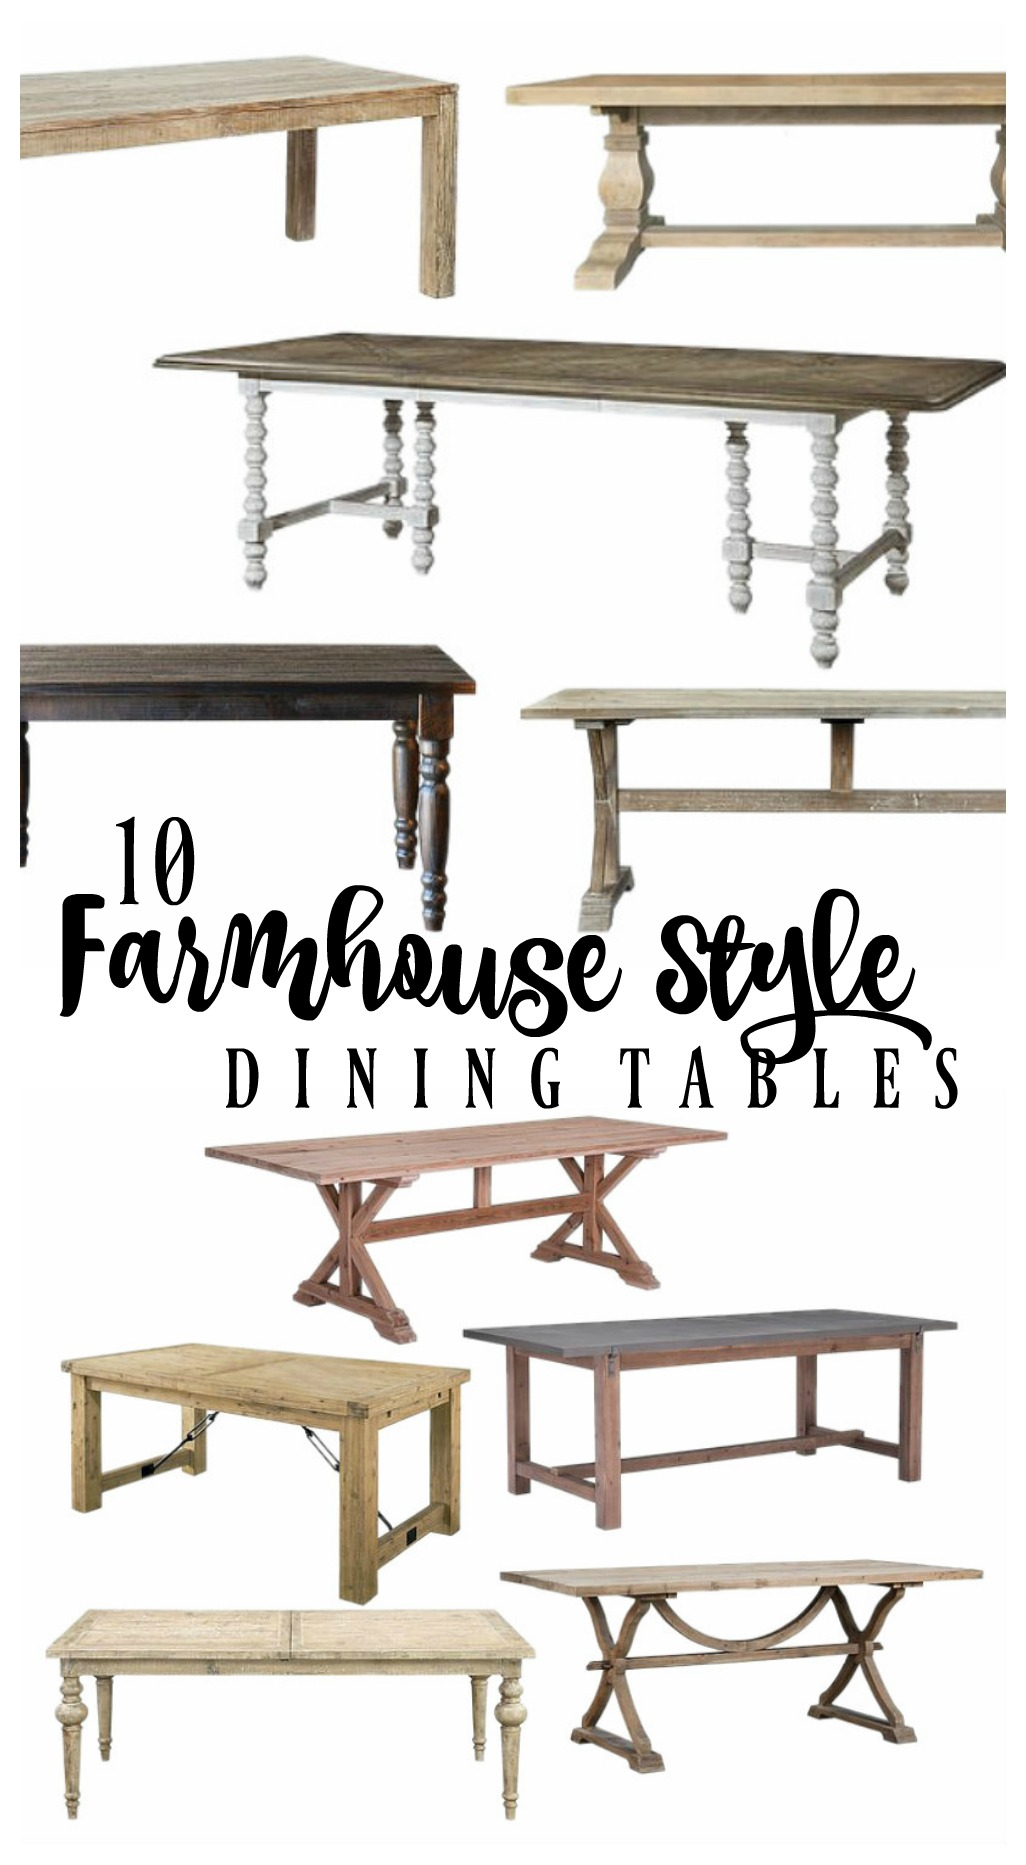 10 farmhouse style dining tables rooms for rent blog. Black Bedroom Furniture Sets. Home Design Ideas